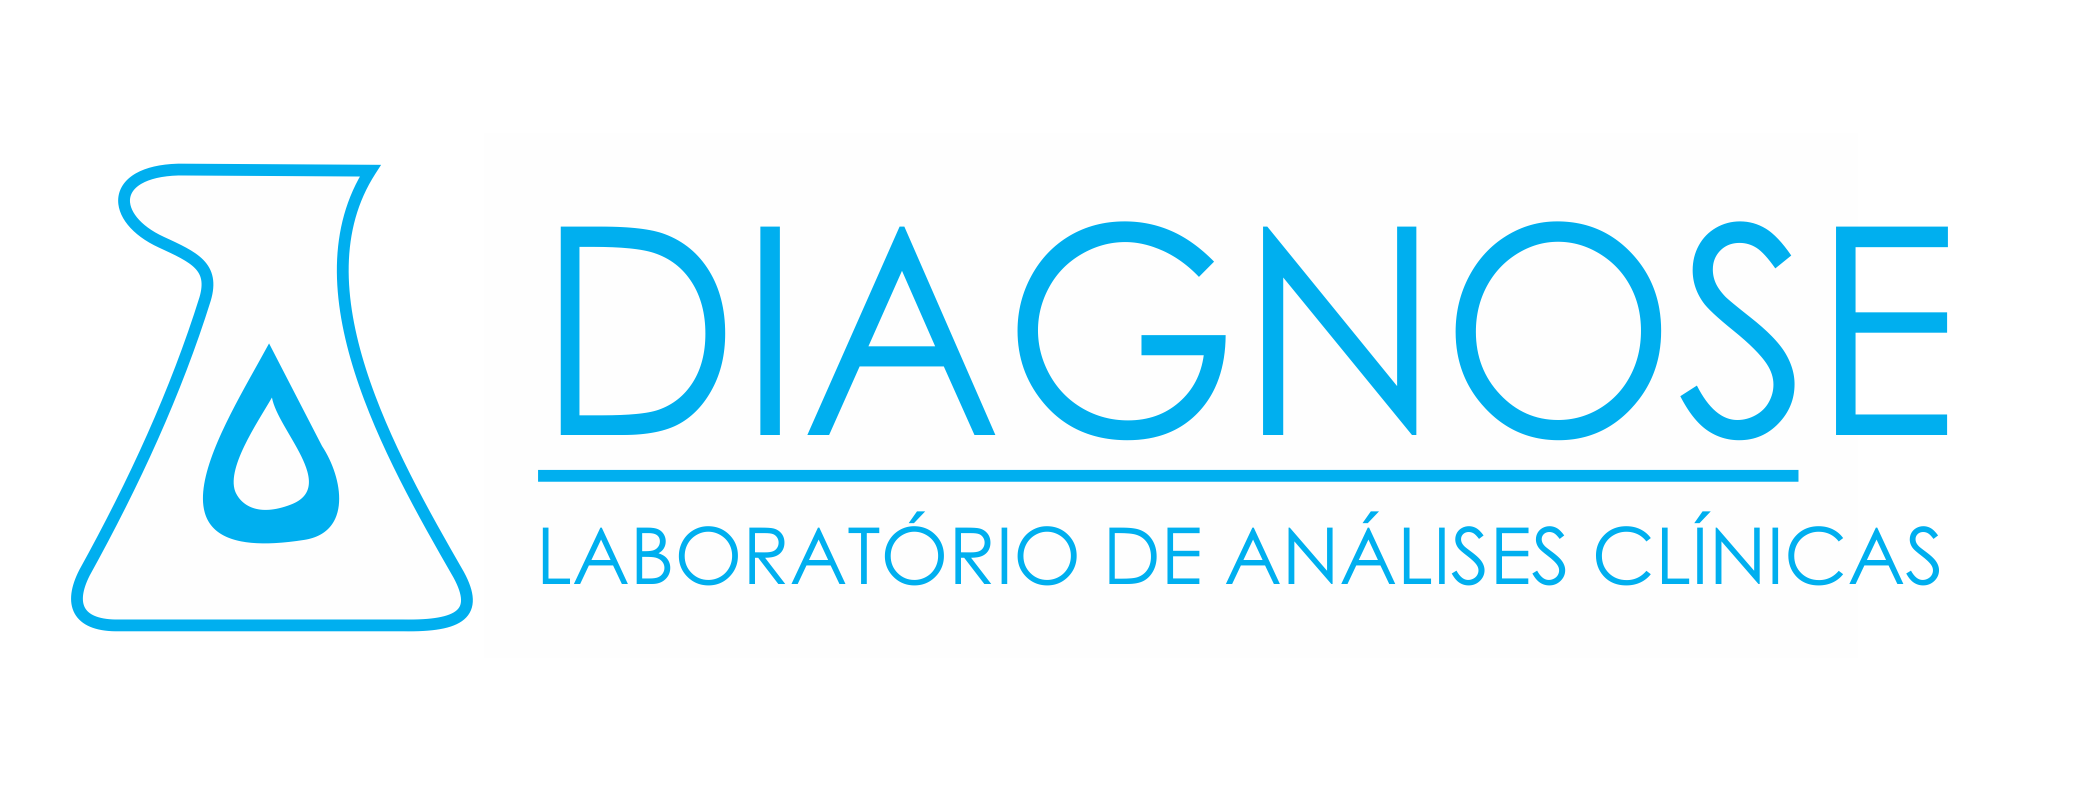 DIAGNOSE LABORATÓRIO DE ANALISES CLINICAS